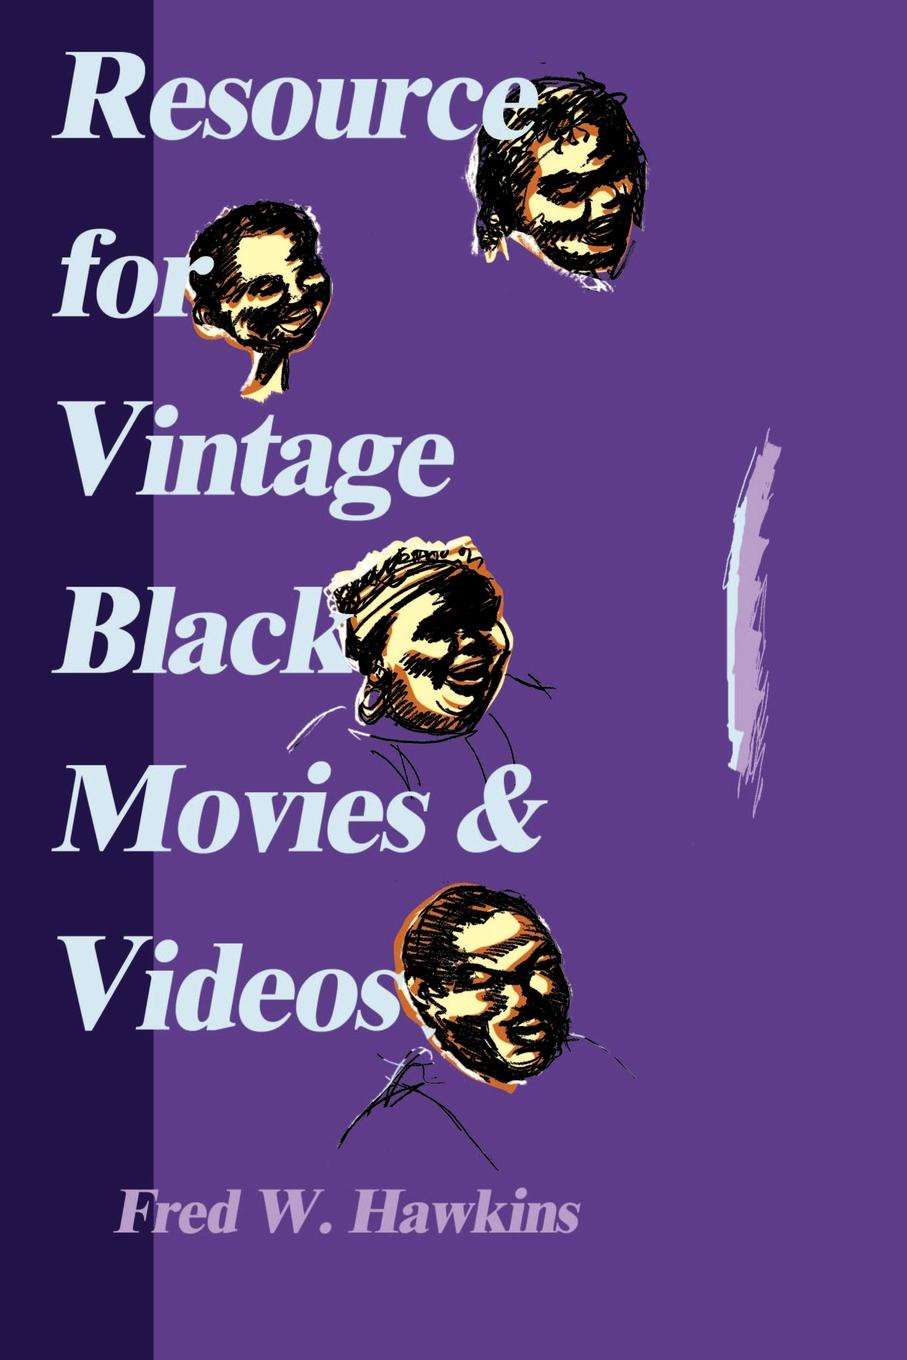 Resource for Vintage Black Movies & Videos. Fred W. Hawkins